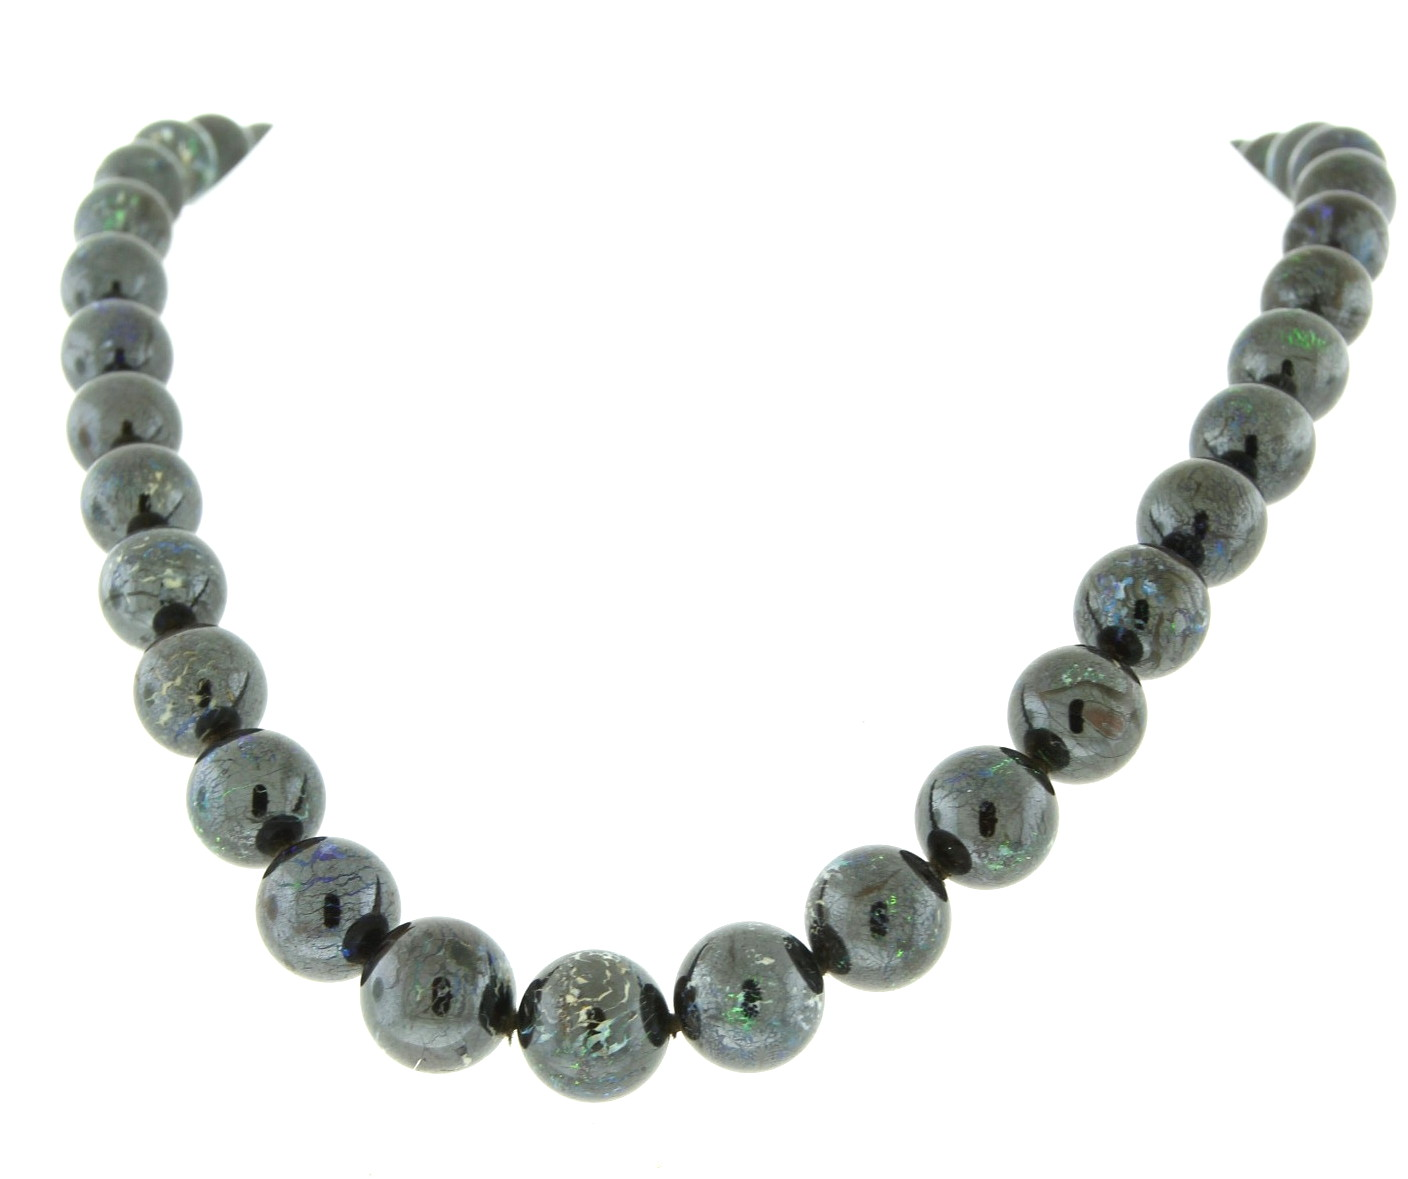 Boulder Opal Bead Necklace in Hufford's Estate Collection - available for purchase